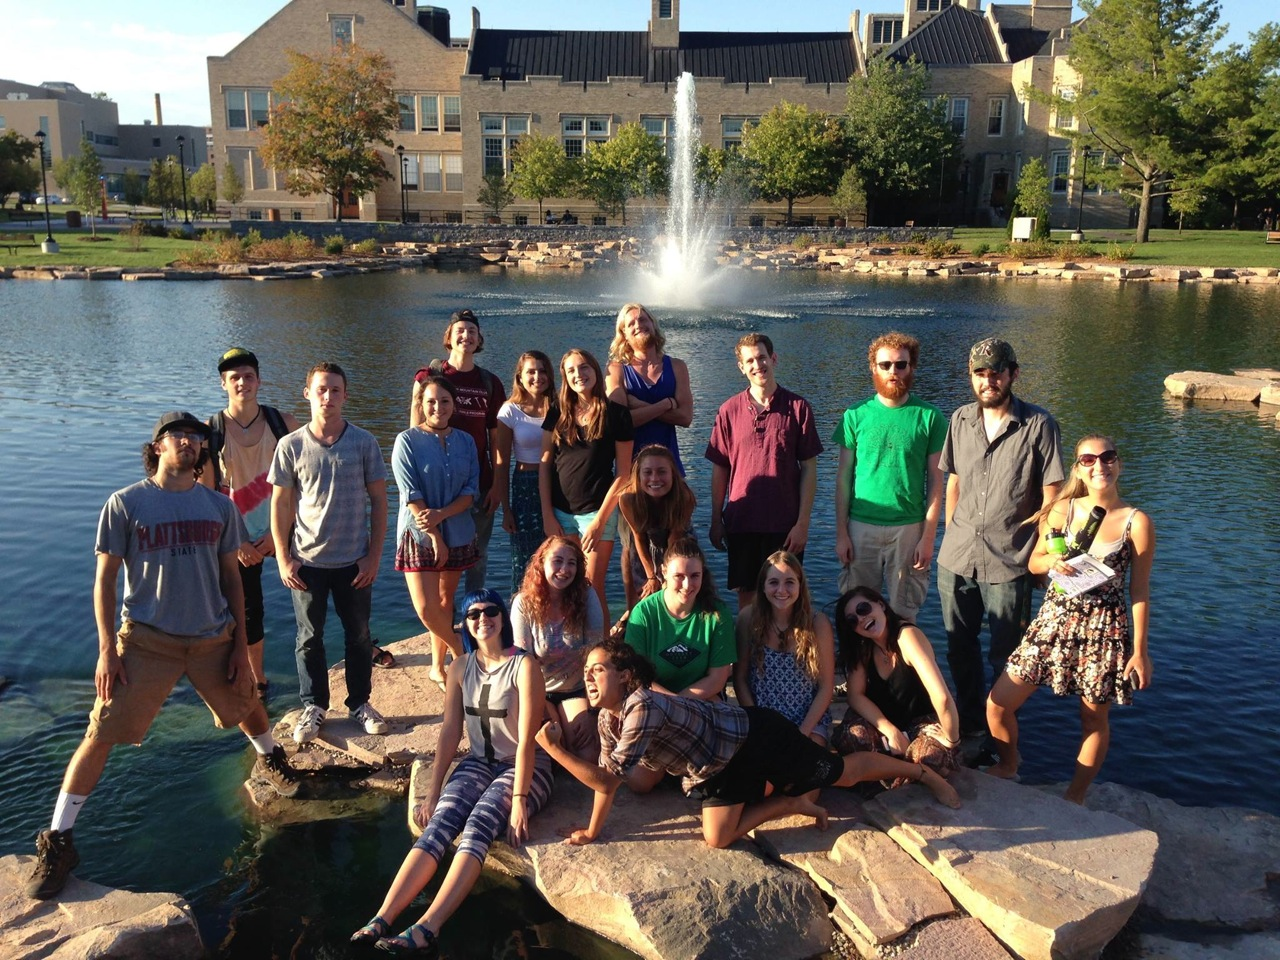 Photo of botany students posing in front of the pond at Hawkins Hall